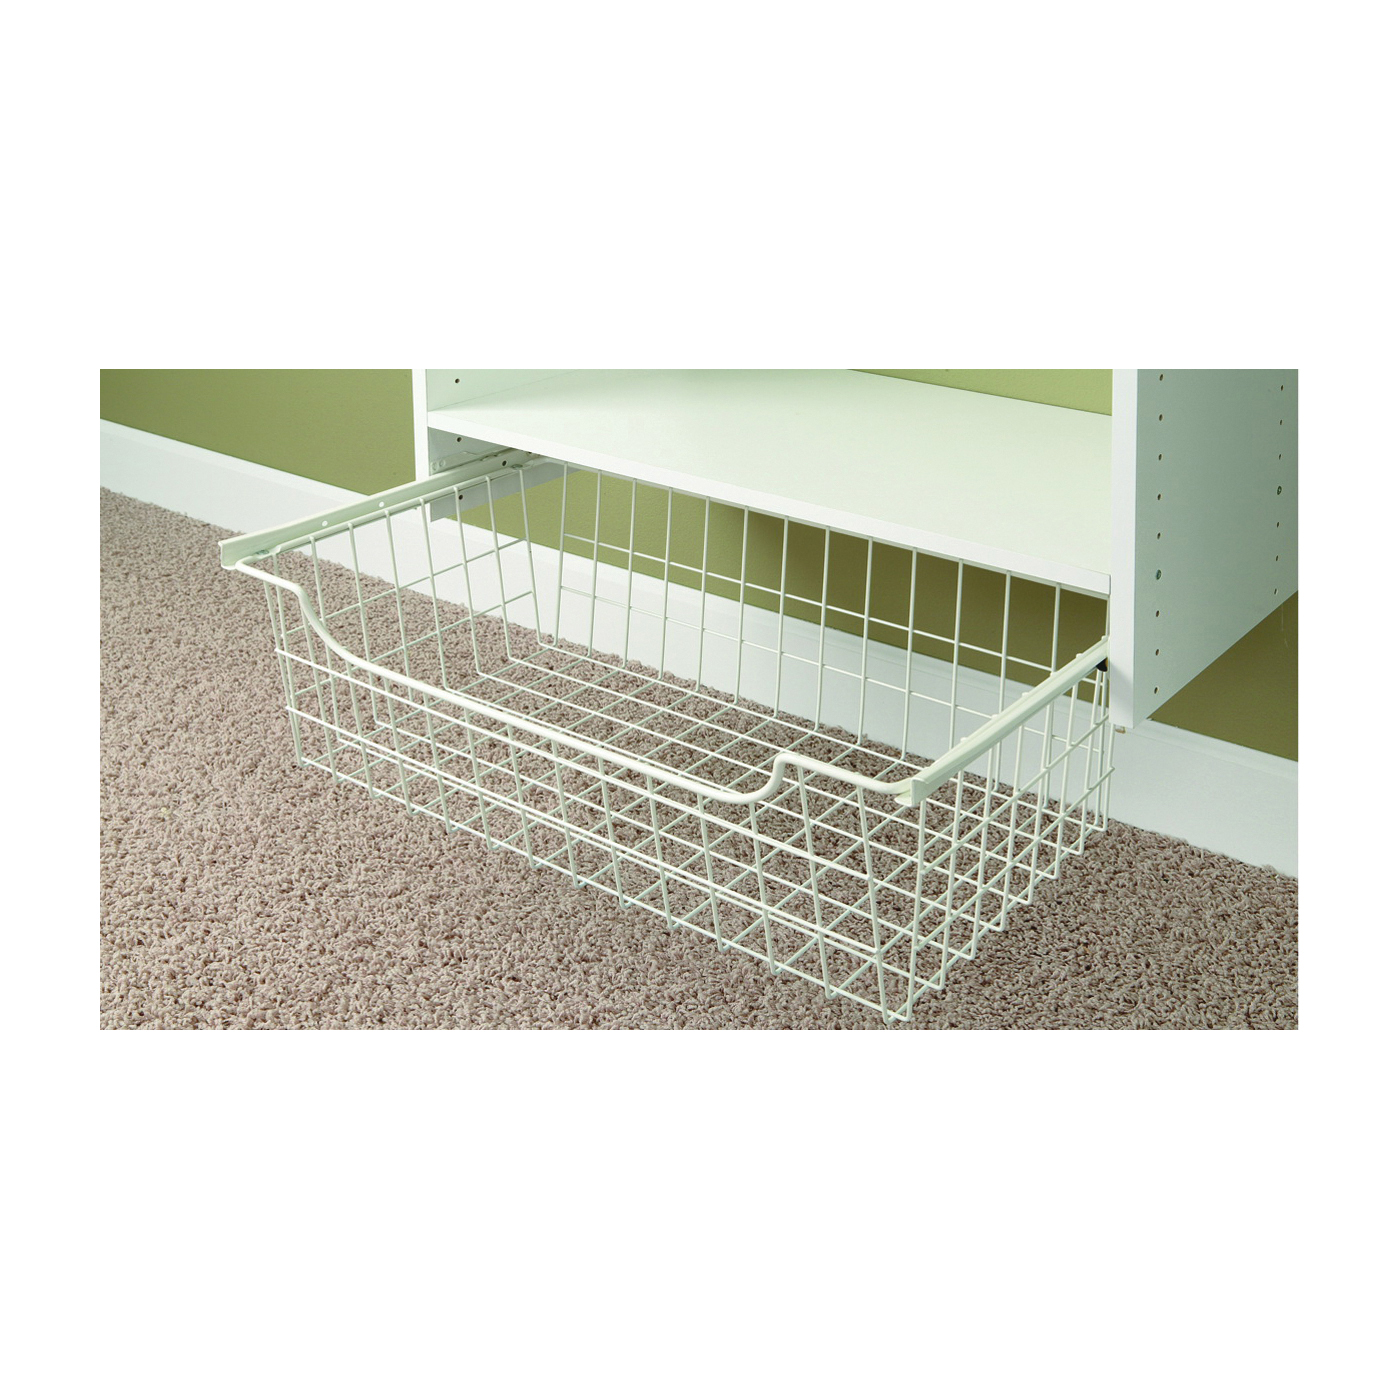 Picture of Easy Track 1312 Wire Basket, 14 in OAL, 24 in OAW, Steel, Powder-Coated